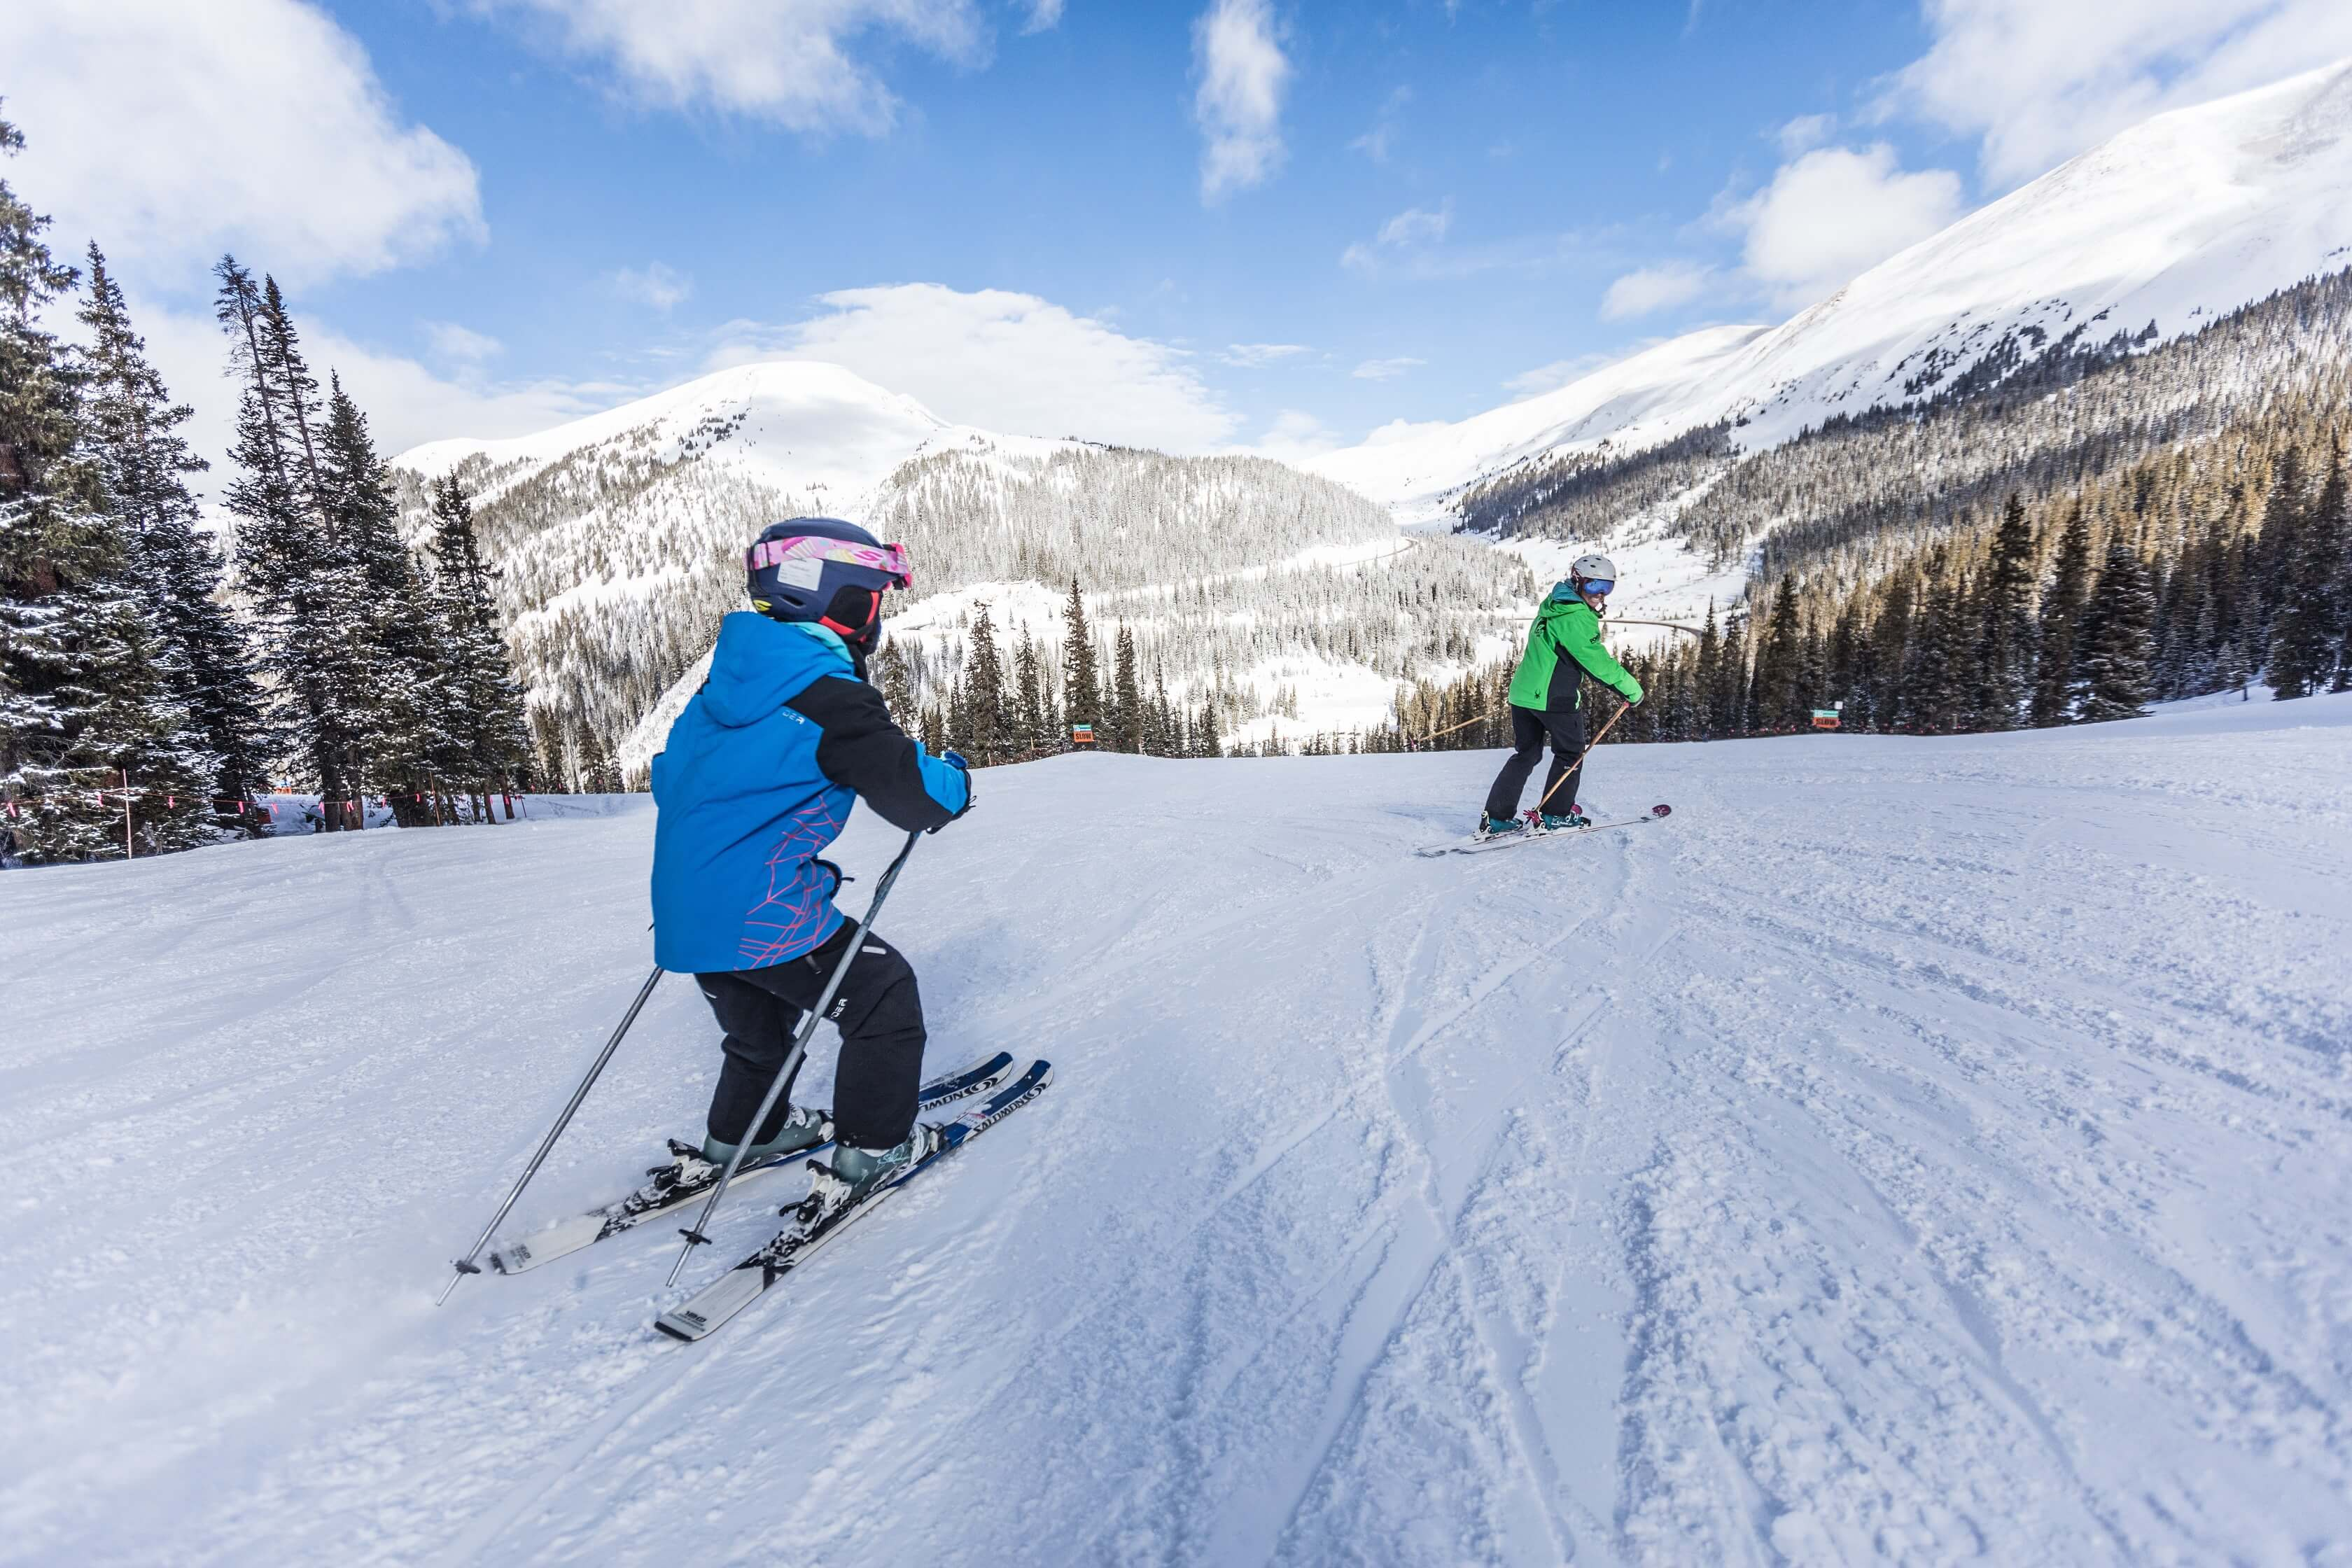 Locals Know: 5 Ski Areas You've Never Thought to Visit (But Should)